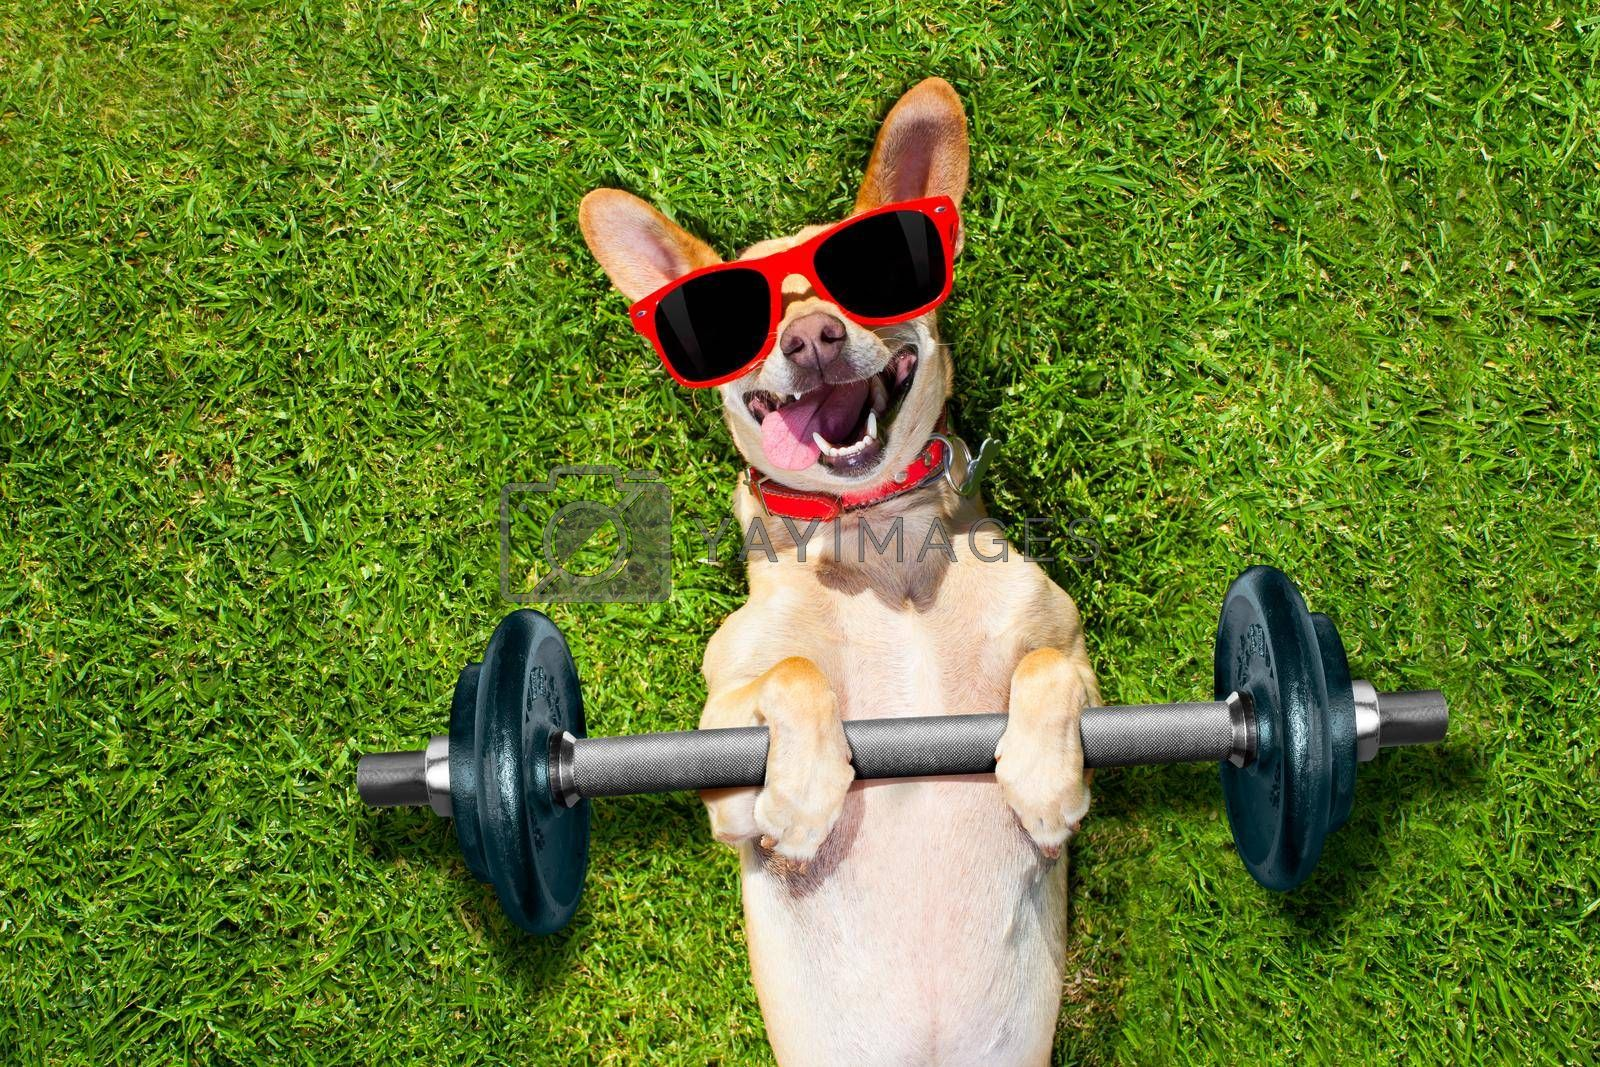 Royalty free image of personal trainer sport fitness dog by Brosch